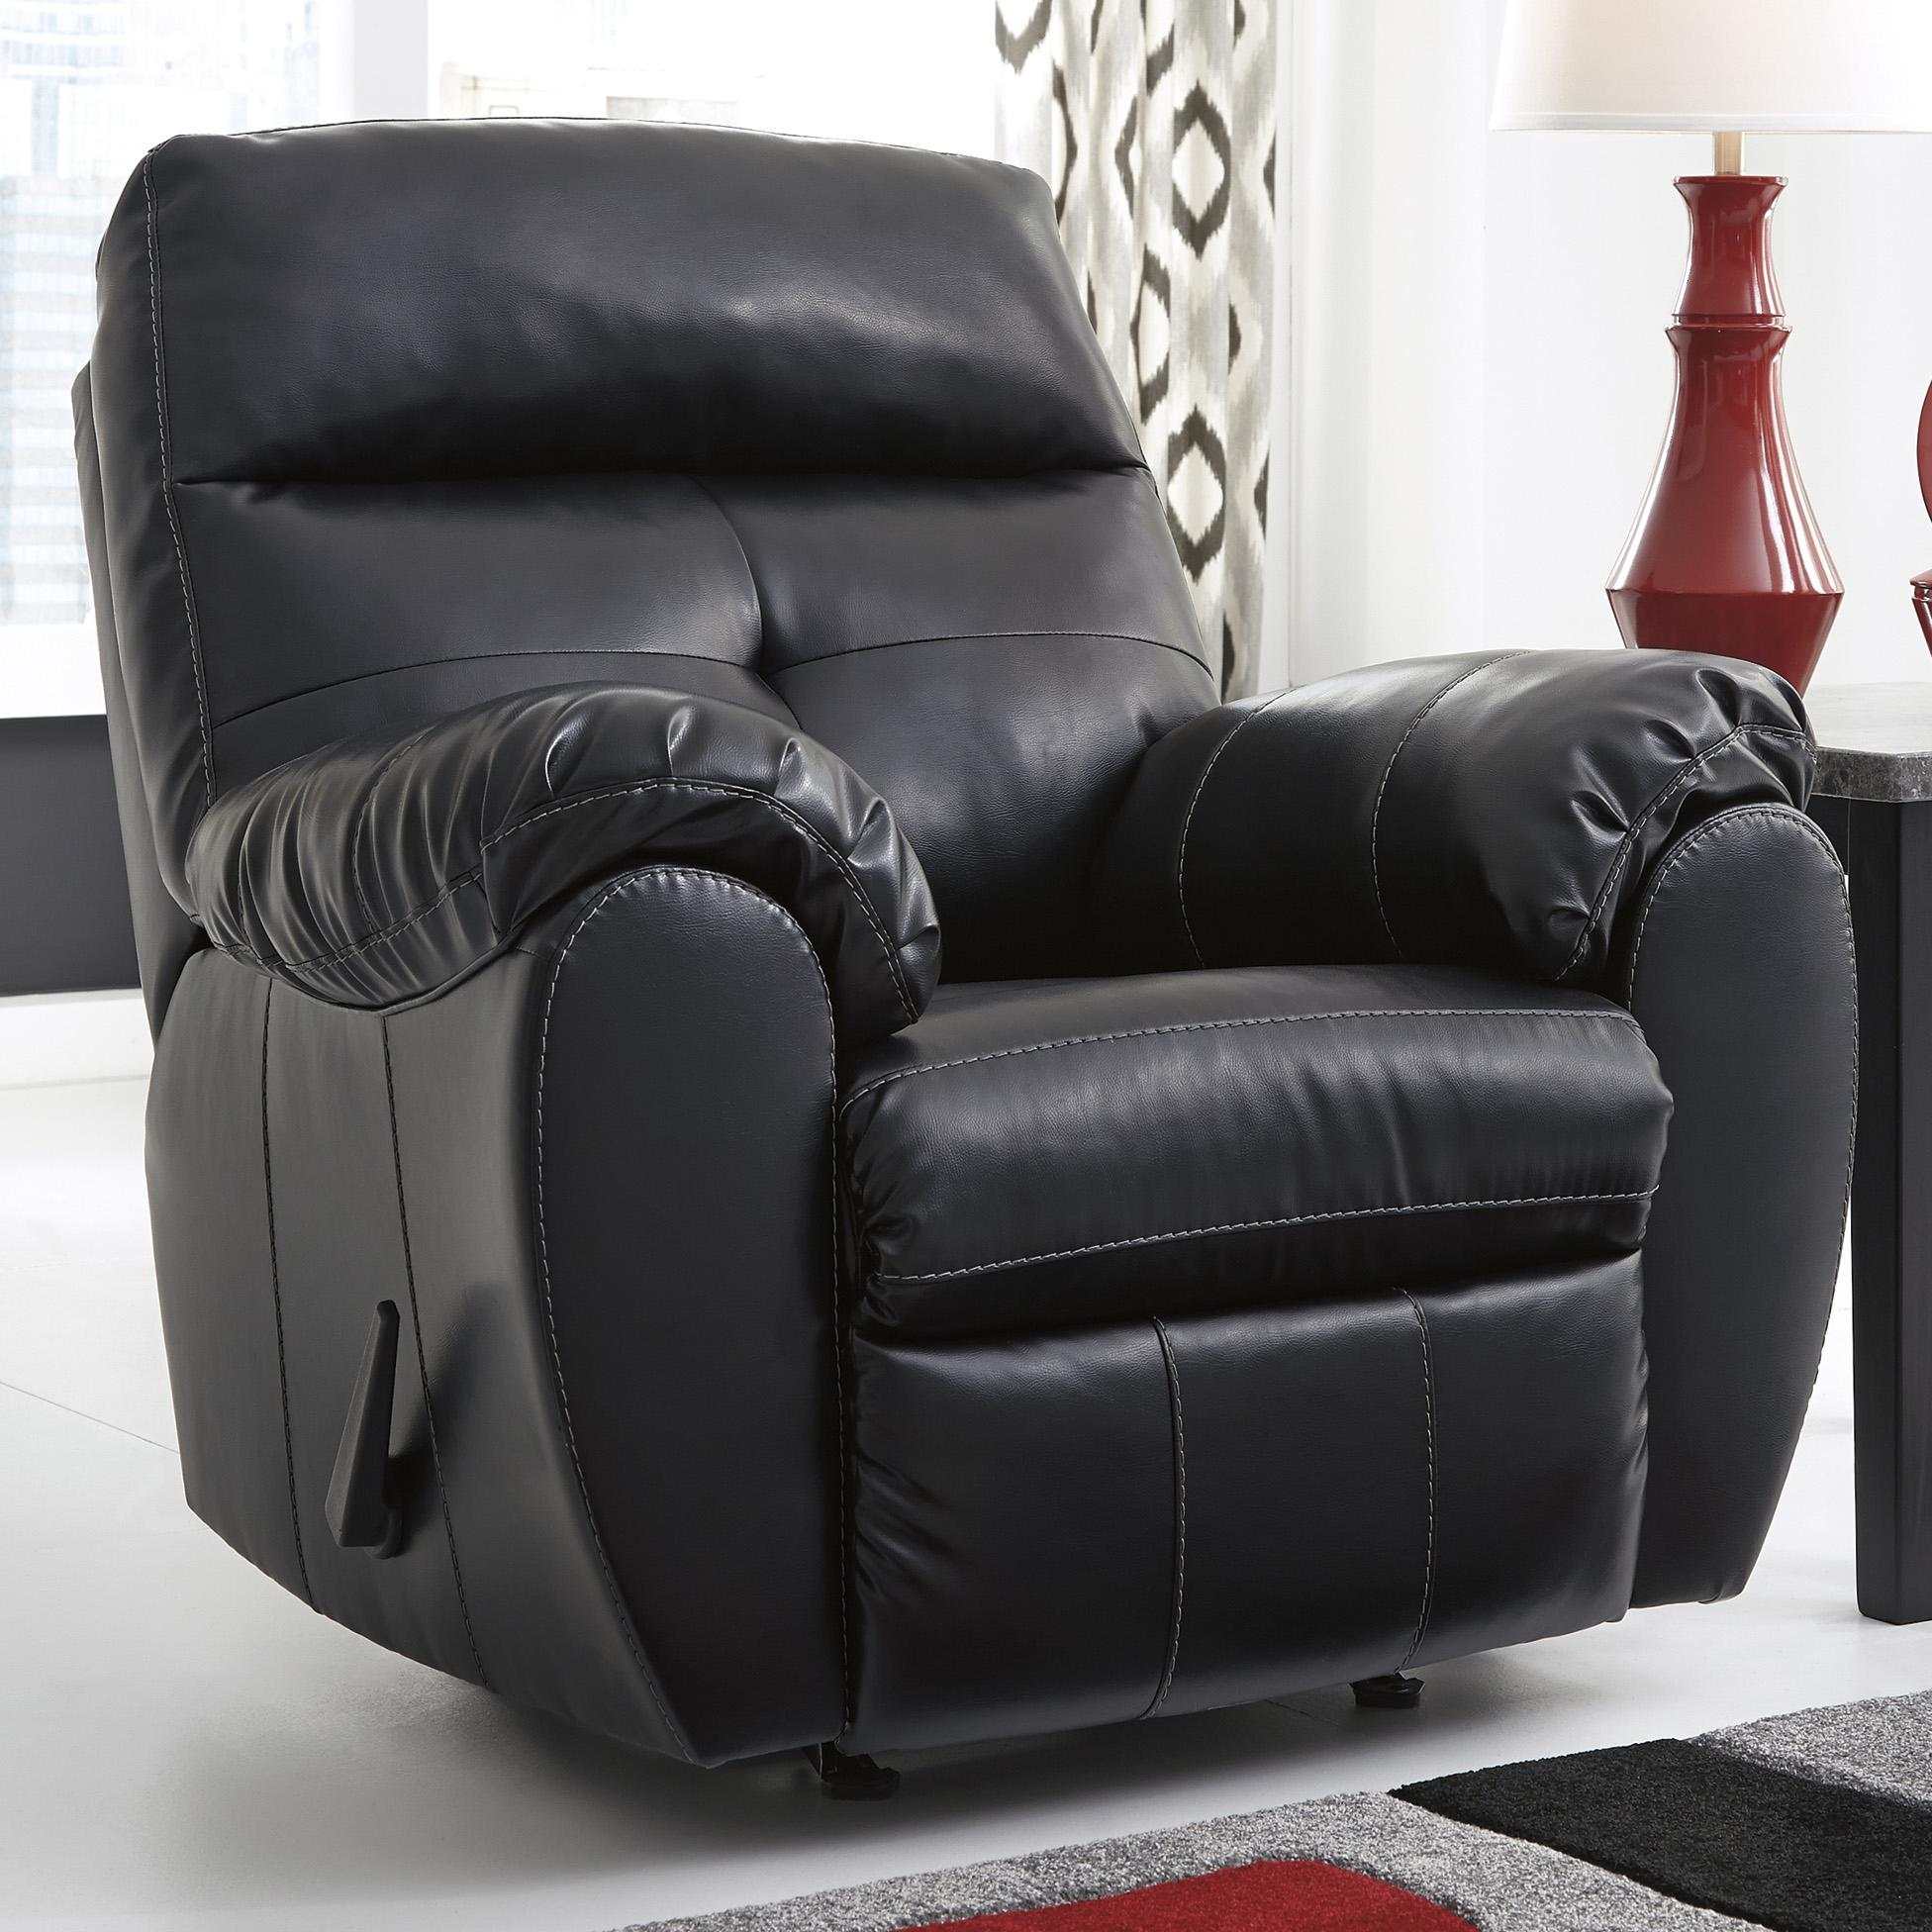 Benchcraft Bastrop DuraBlend - Midnight Rocker Recliner - Item Number: 4460125